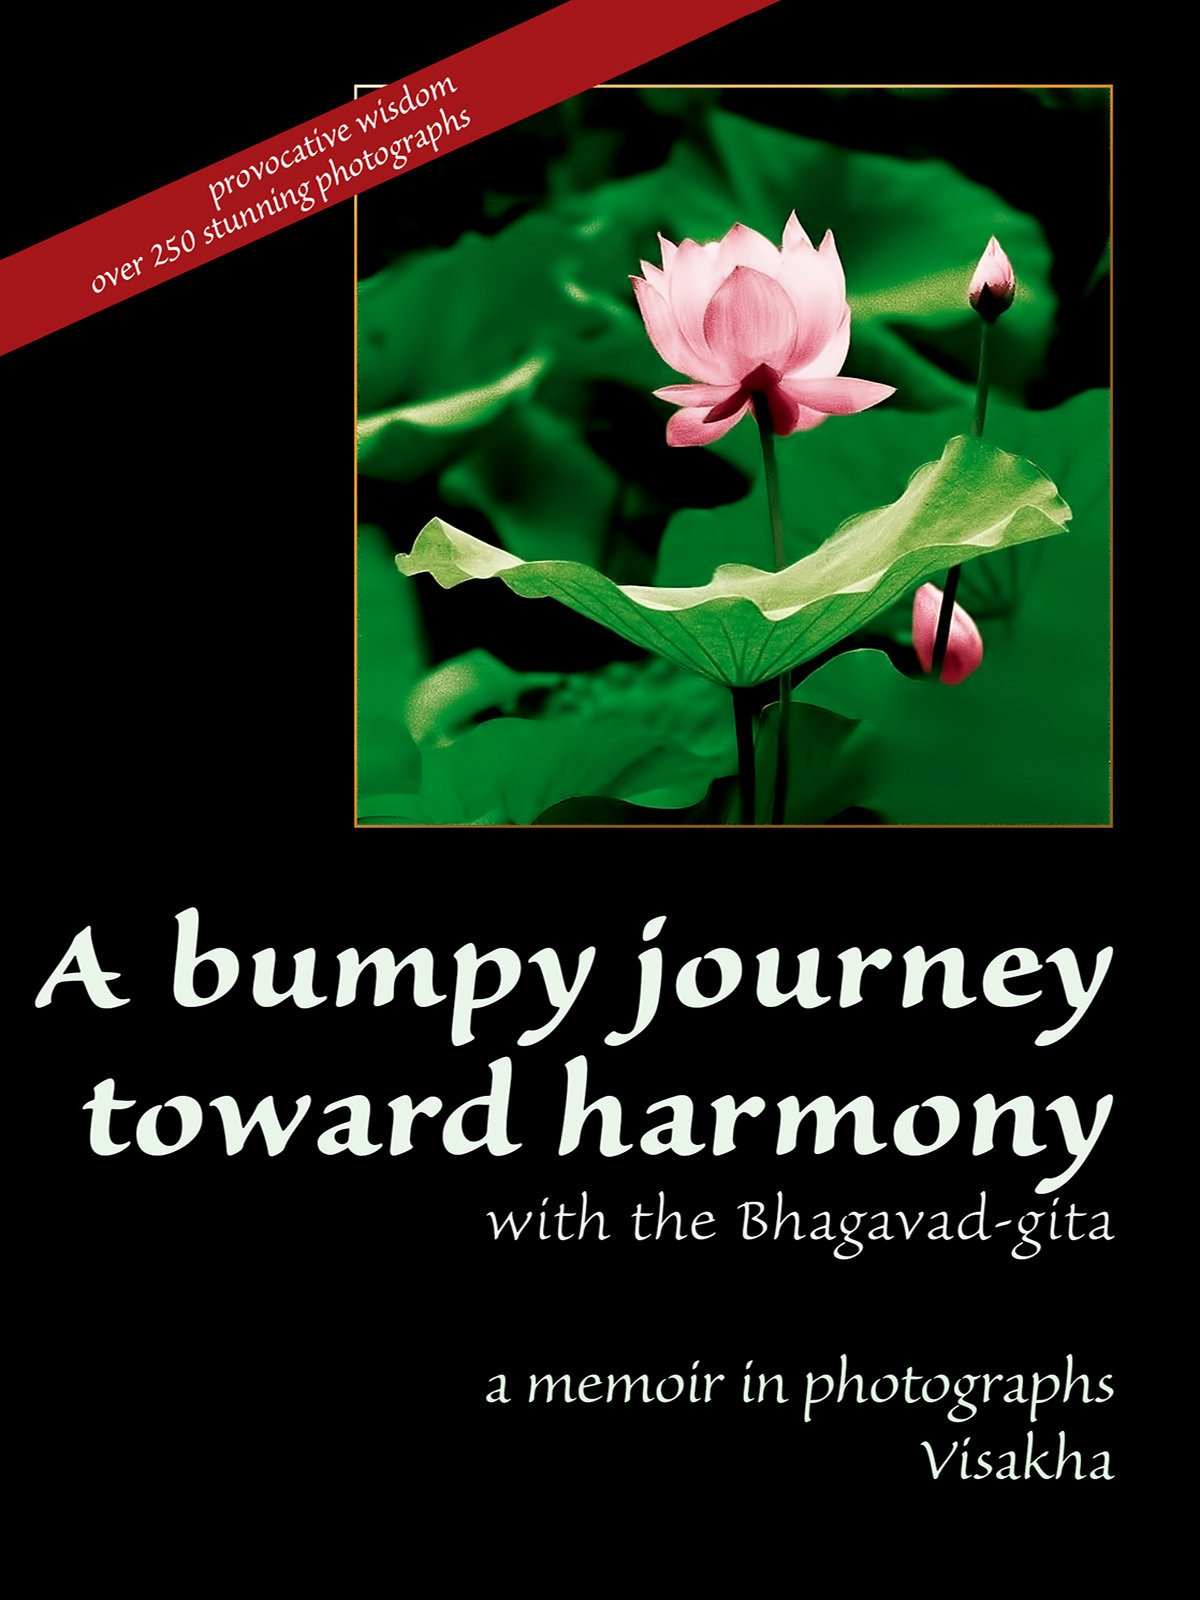 A Bumpy Journey Toward Harmony with the Bhagavad-gita: a memoir in photographs on Amazon Prime Instant Video UK